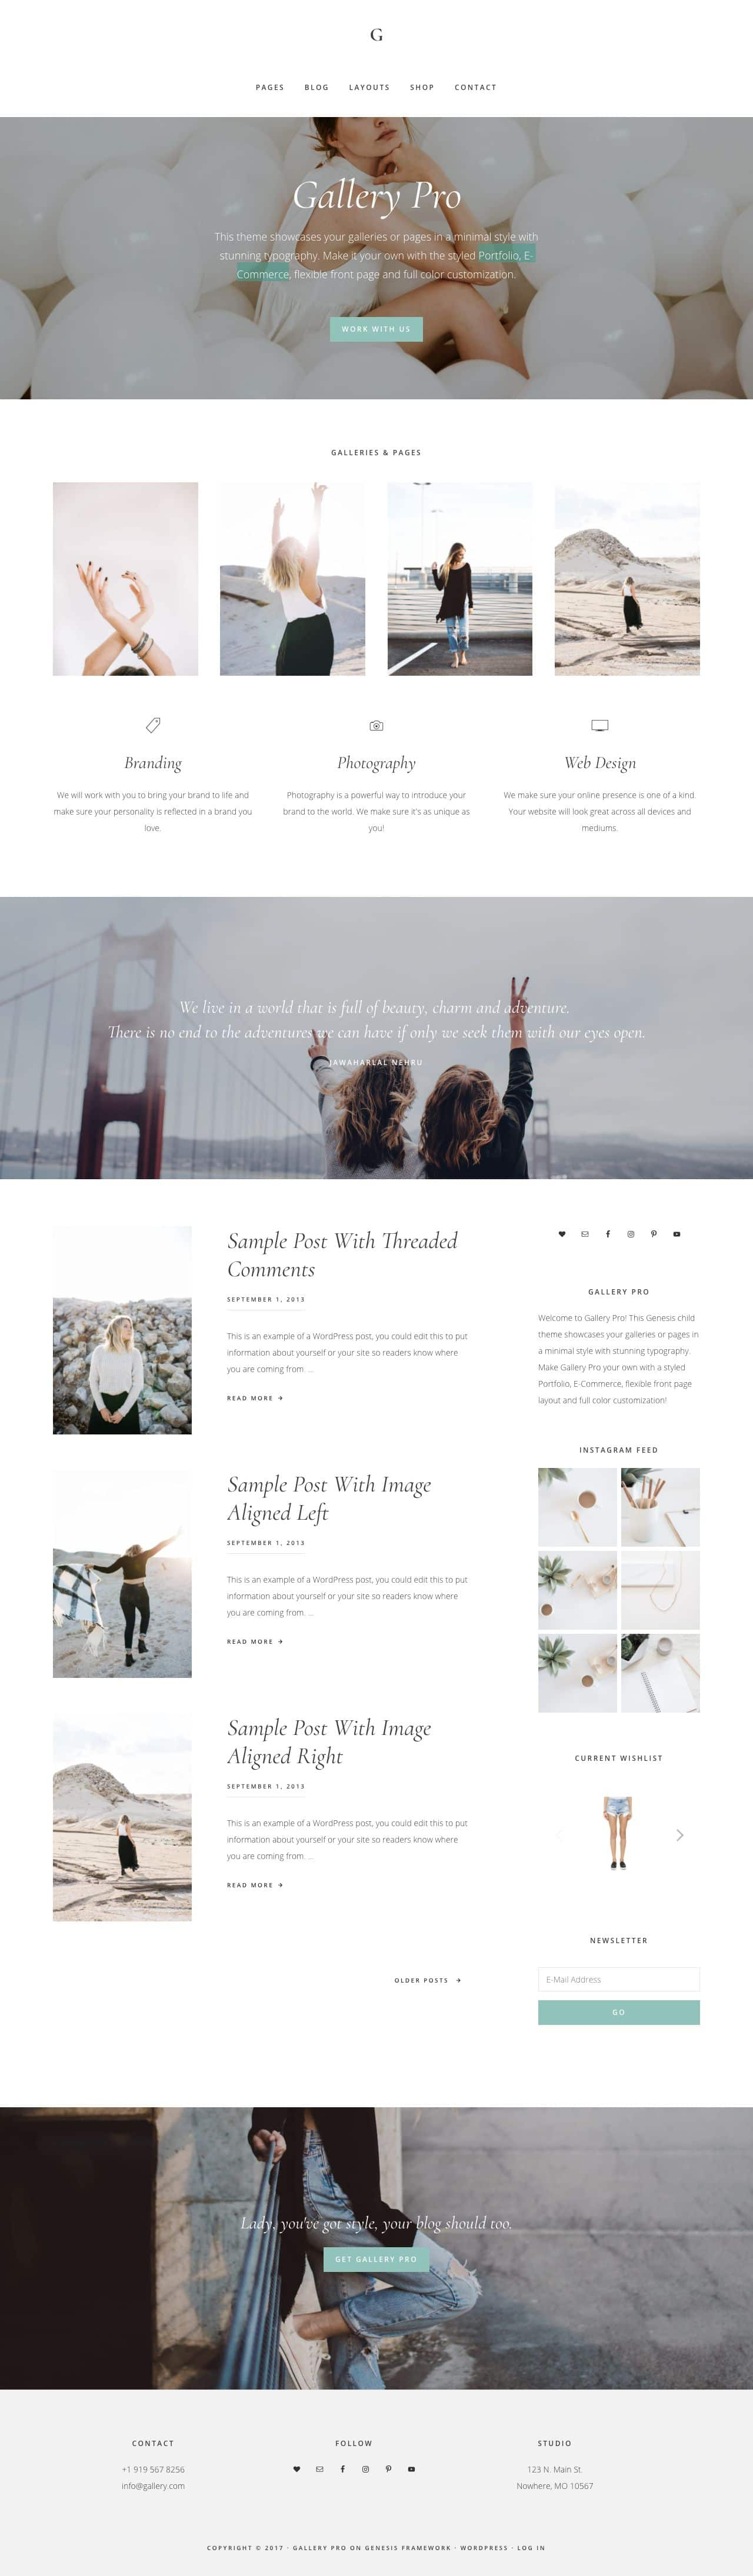 Gallery Pro WordPress Genesis Framework Theme